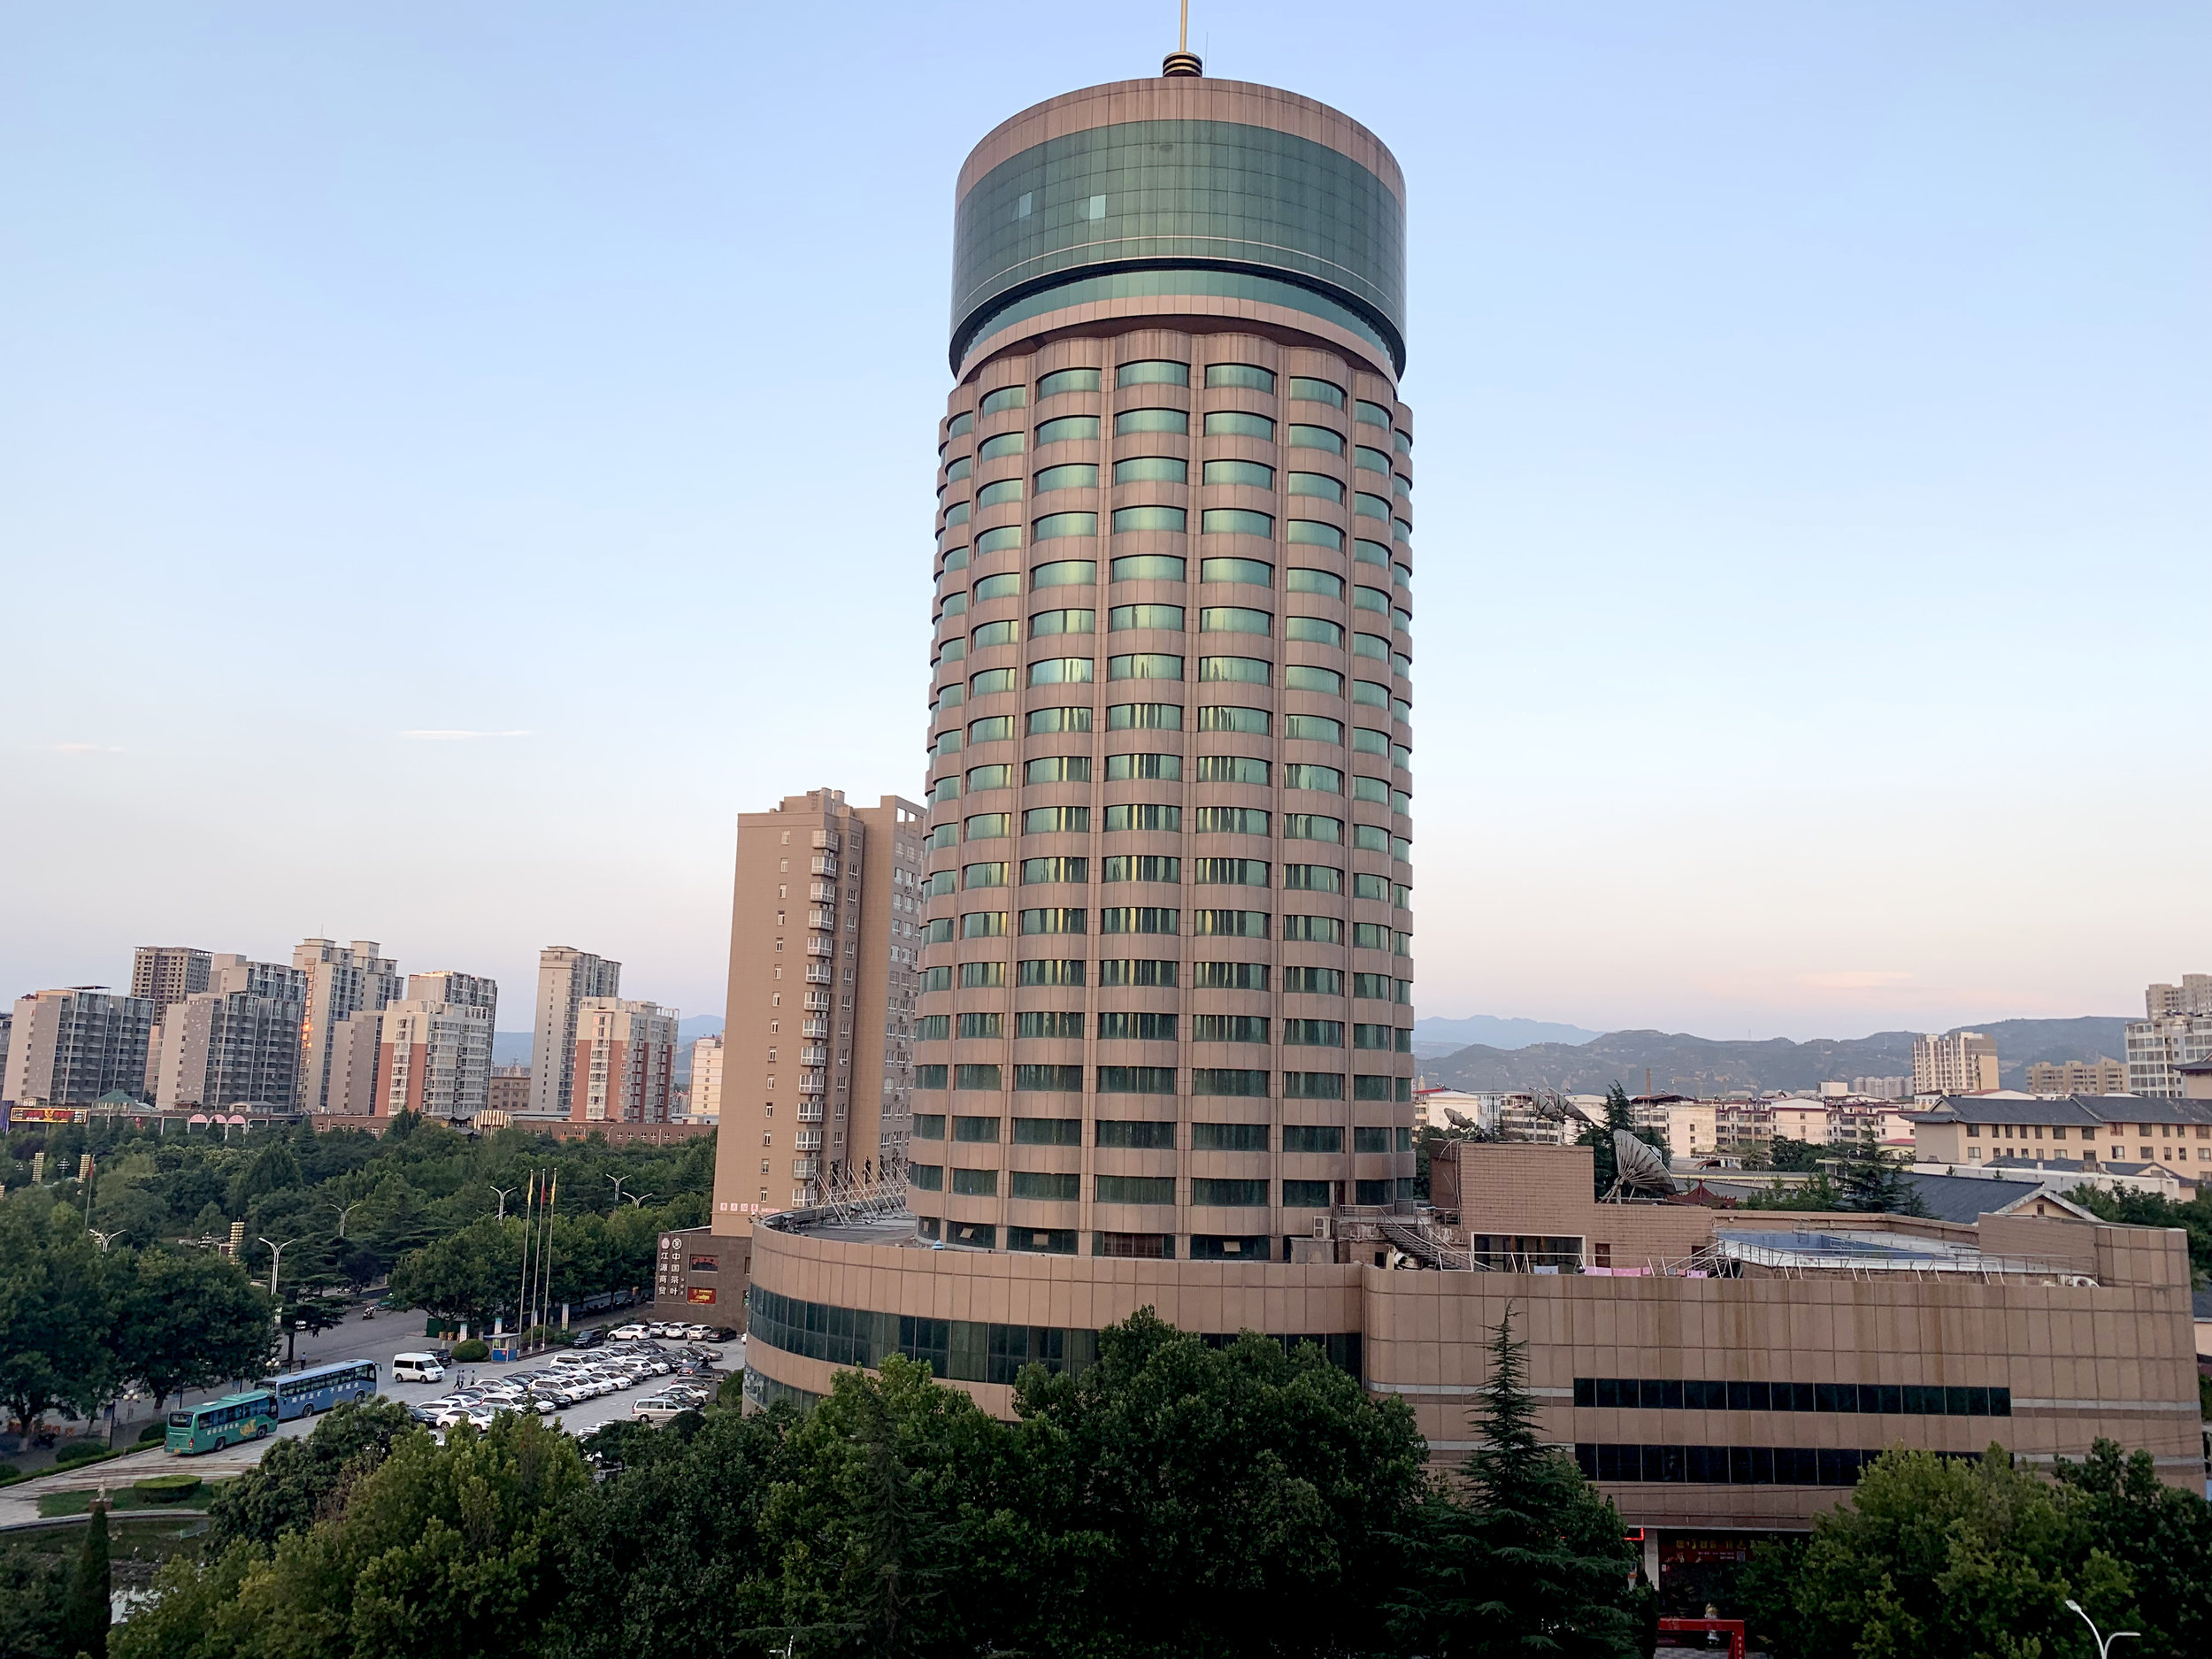 The city of Lingbao from my hotel window.